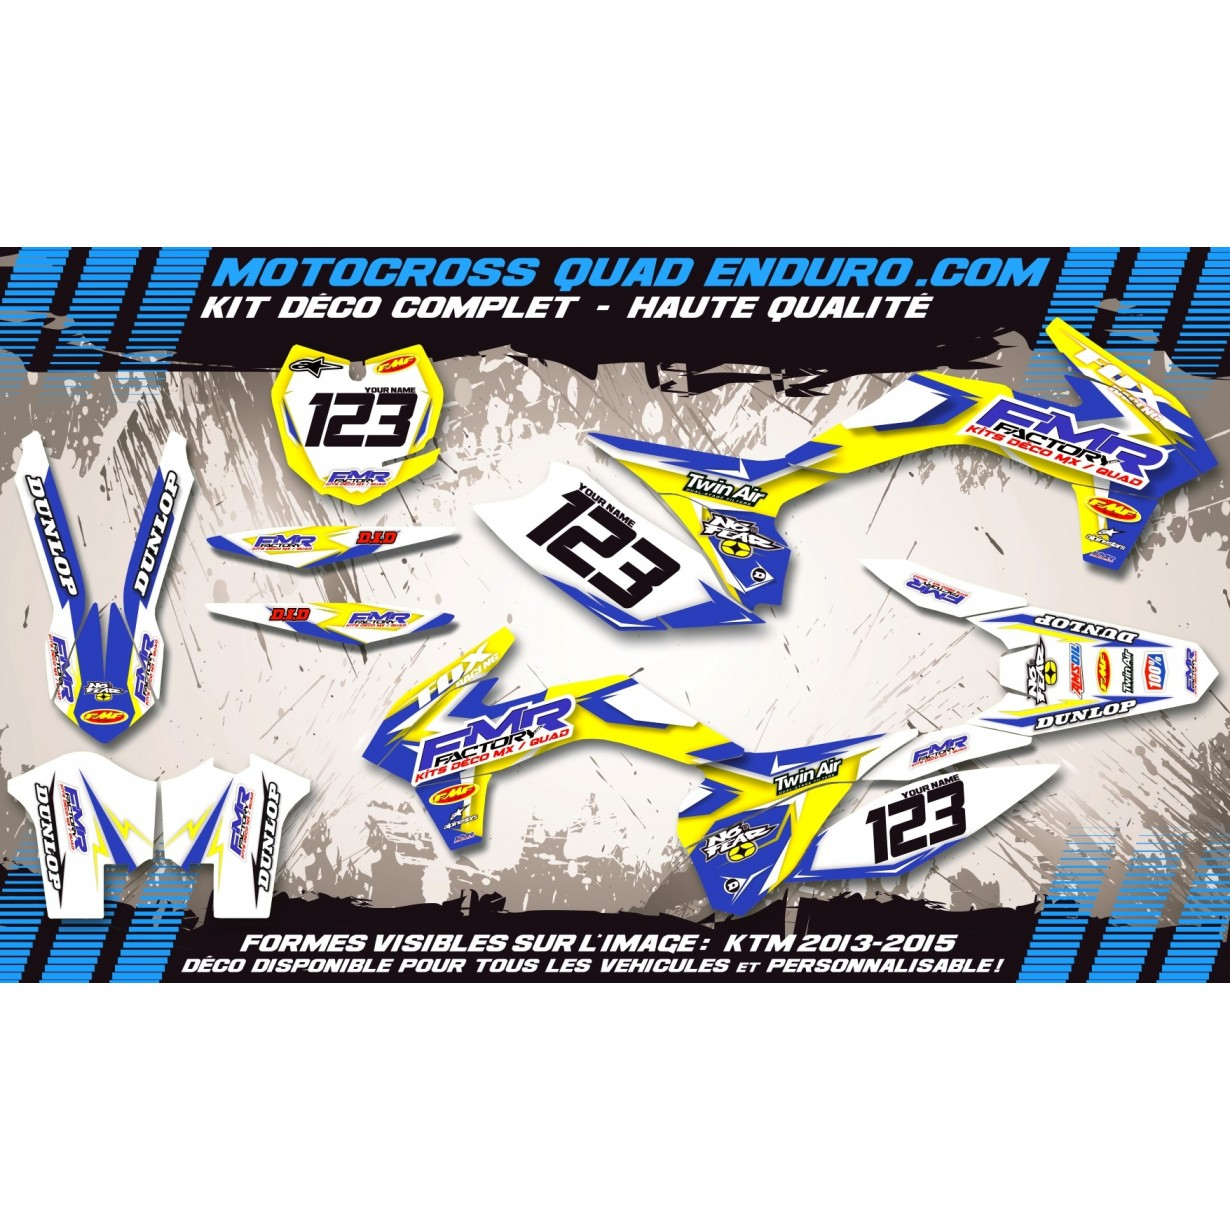 KIT DÉCO Perso 350 RAPTOR Quad Fmr Factory MA13D